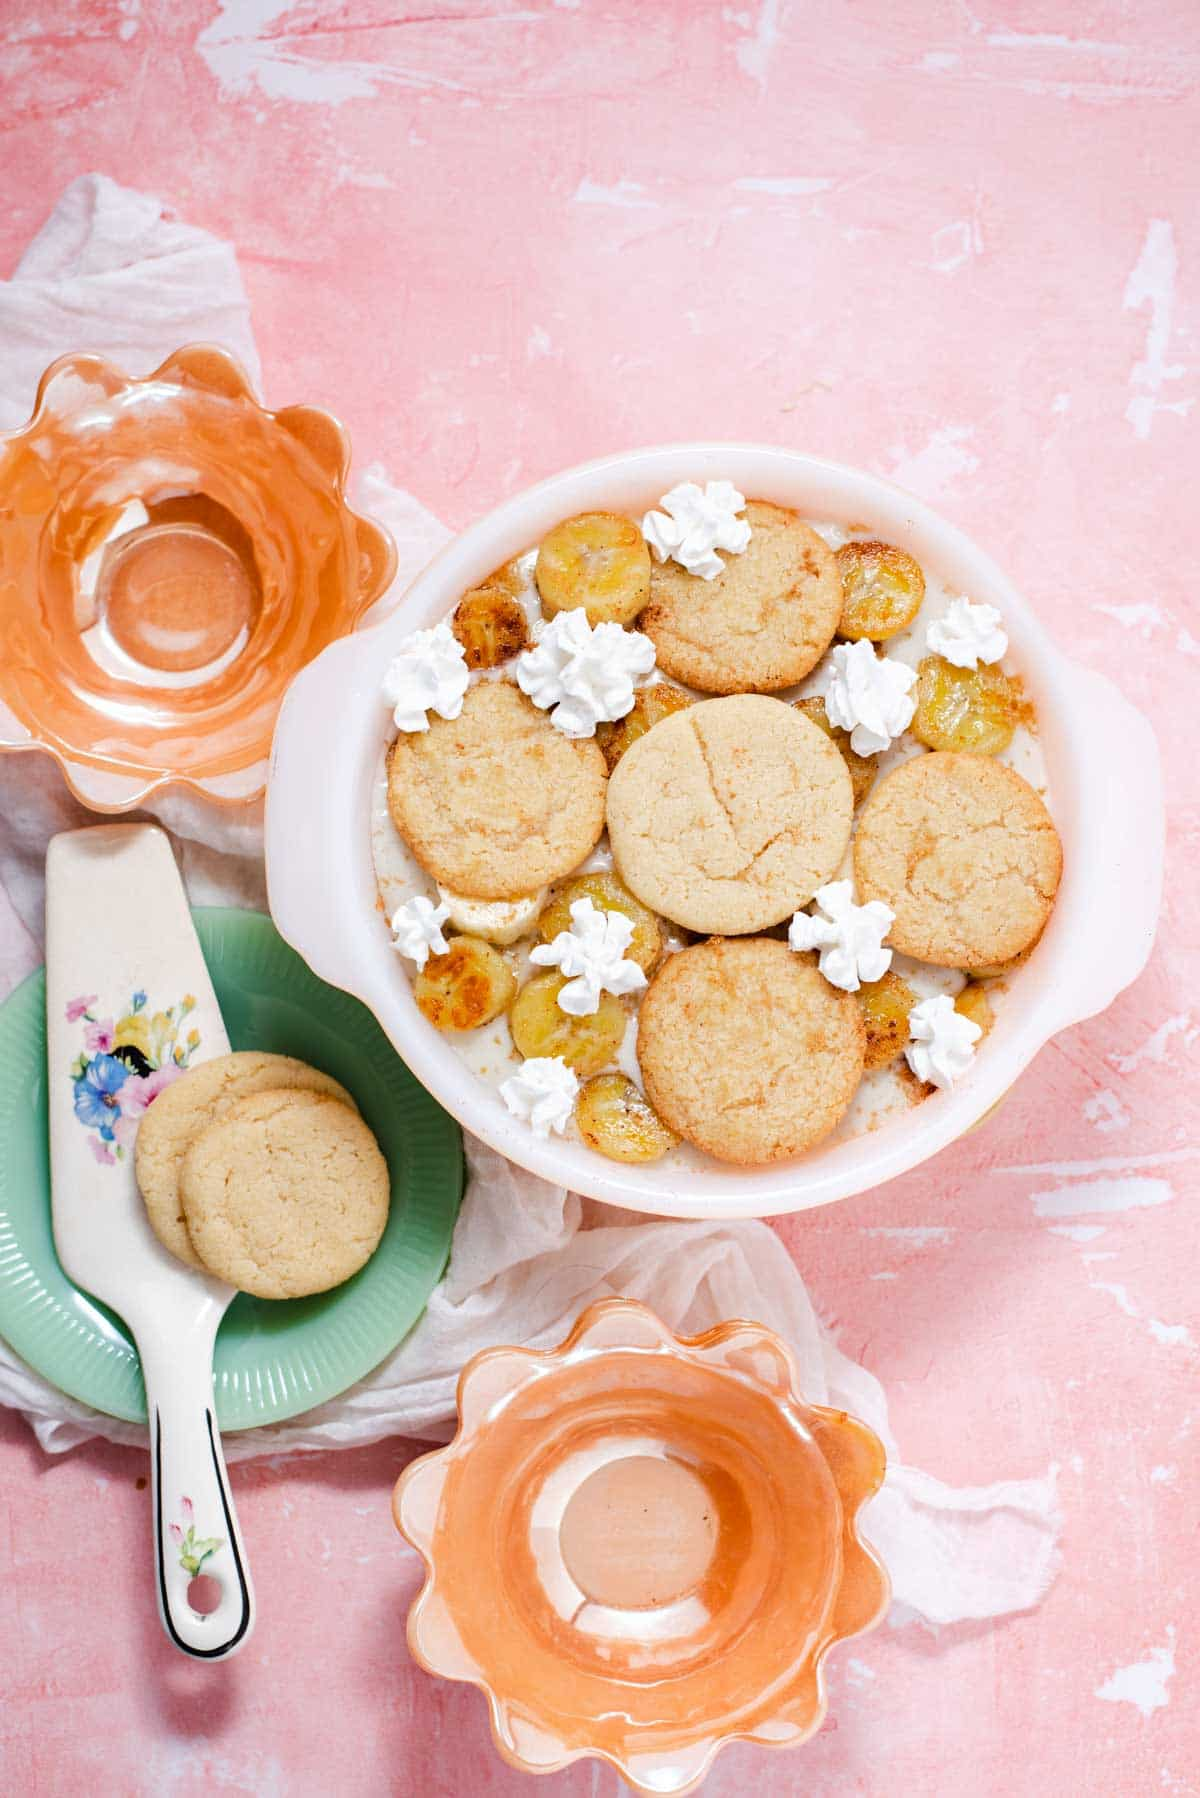 Overhead view of bowl of banana pudding next to orange and green plates on a pink background